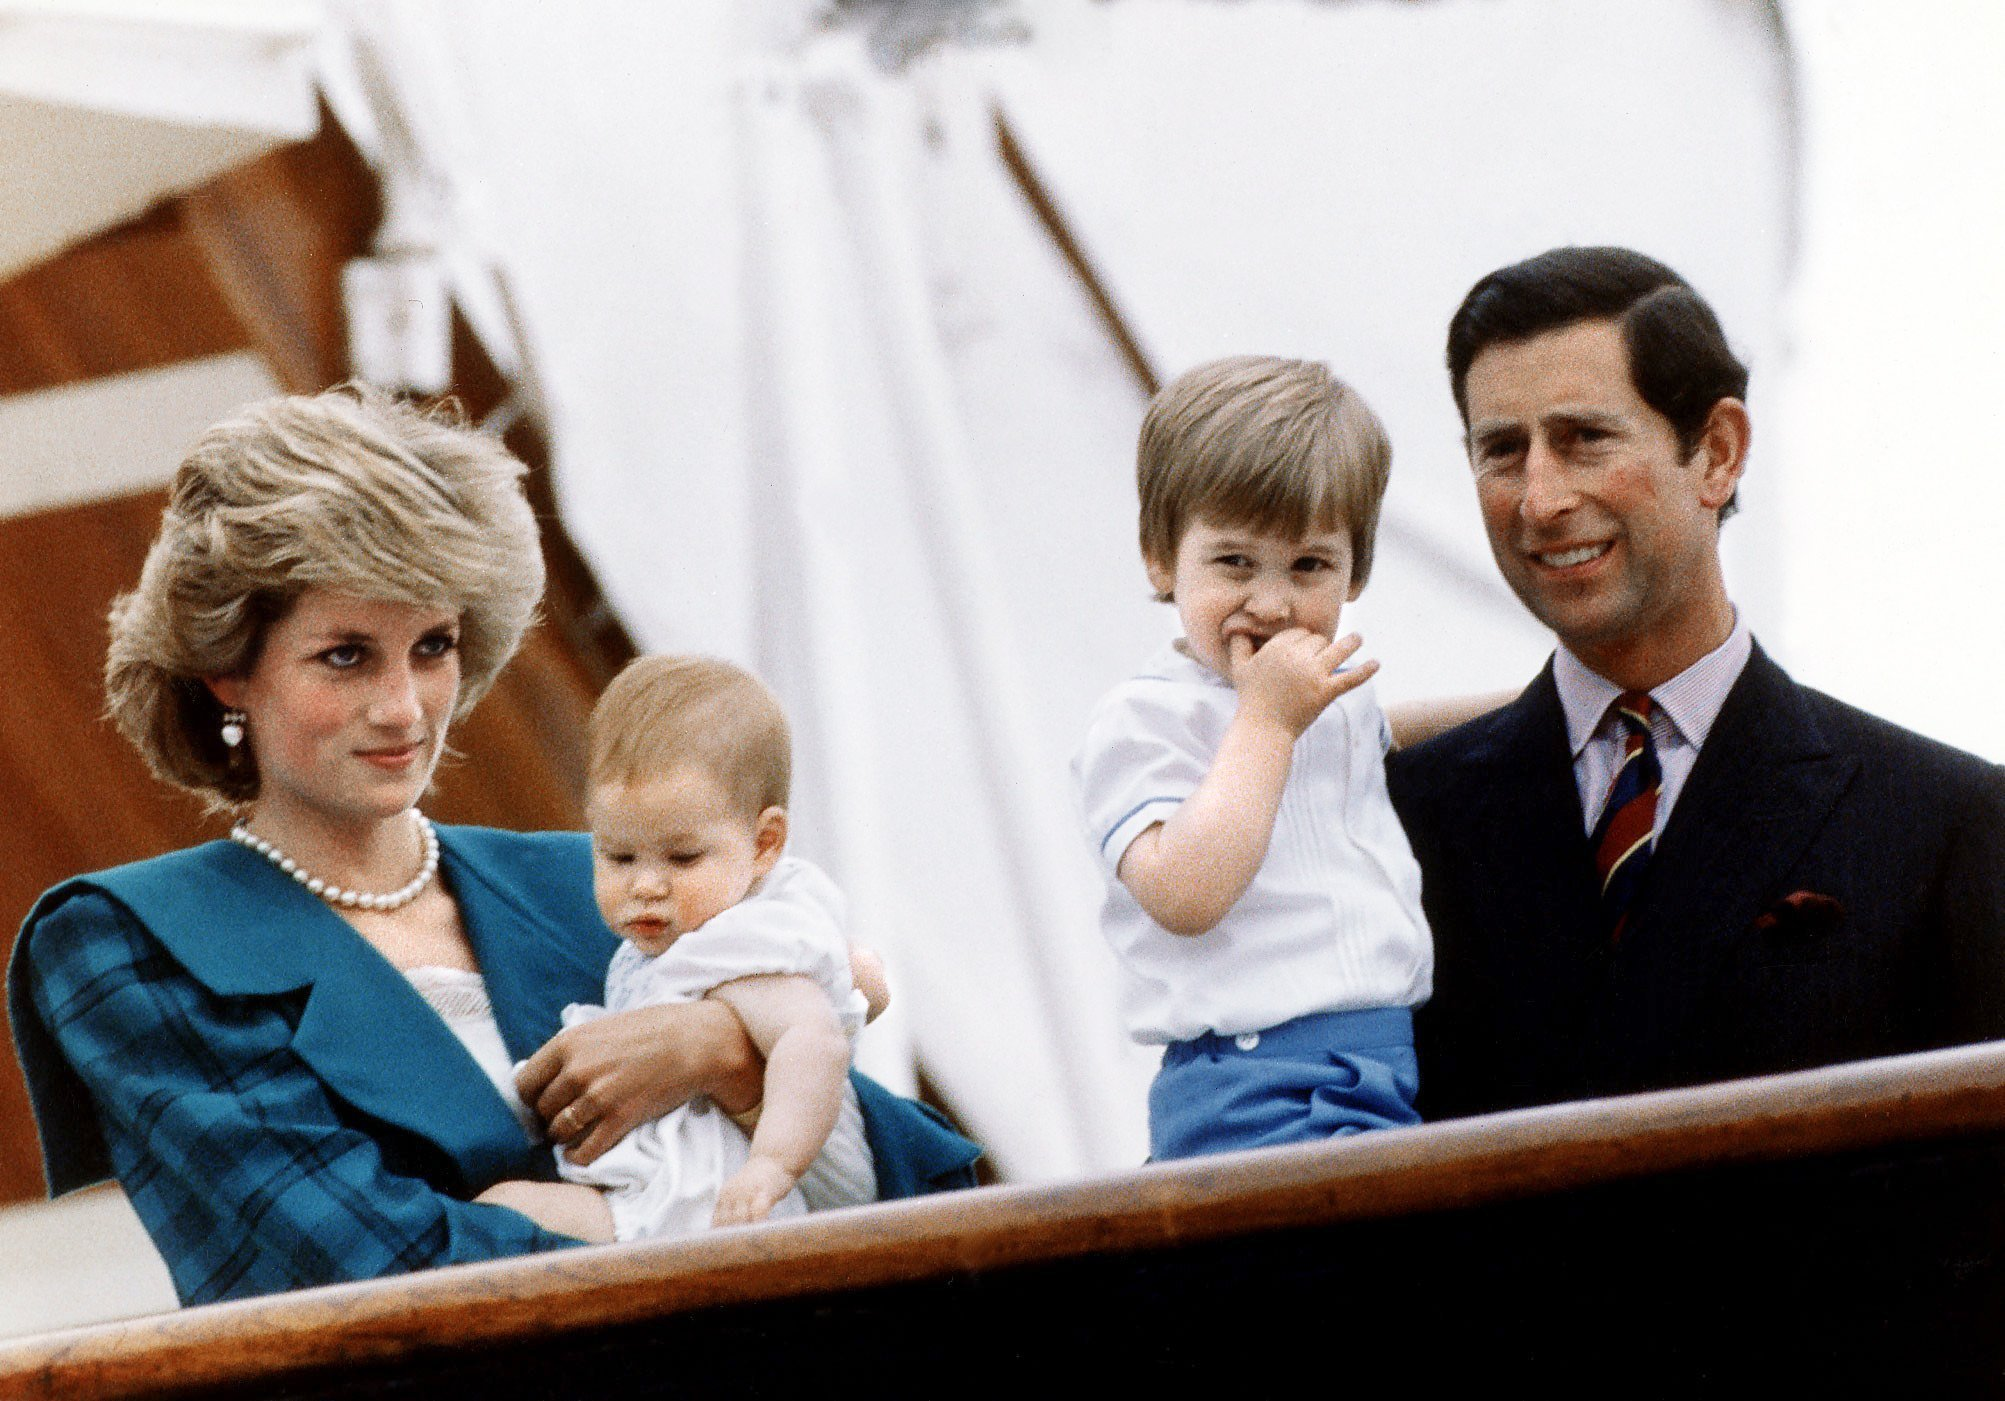 Princess Diana and Prince Charles pose with their sons Princes Harry and William on board royal yacht Britannia during their visit to Venice, Italy, 6th May 1985 | Getty Images